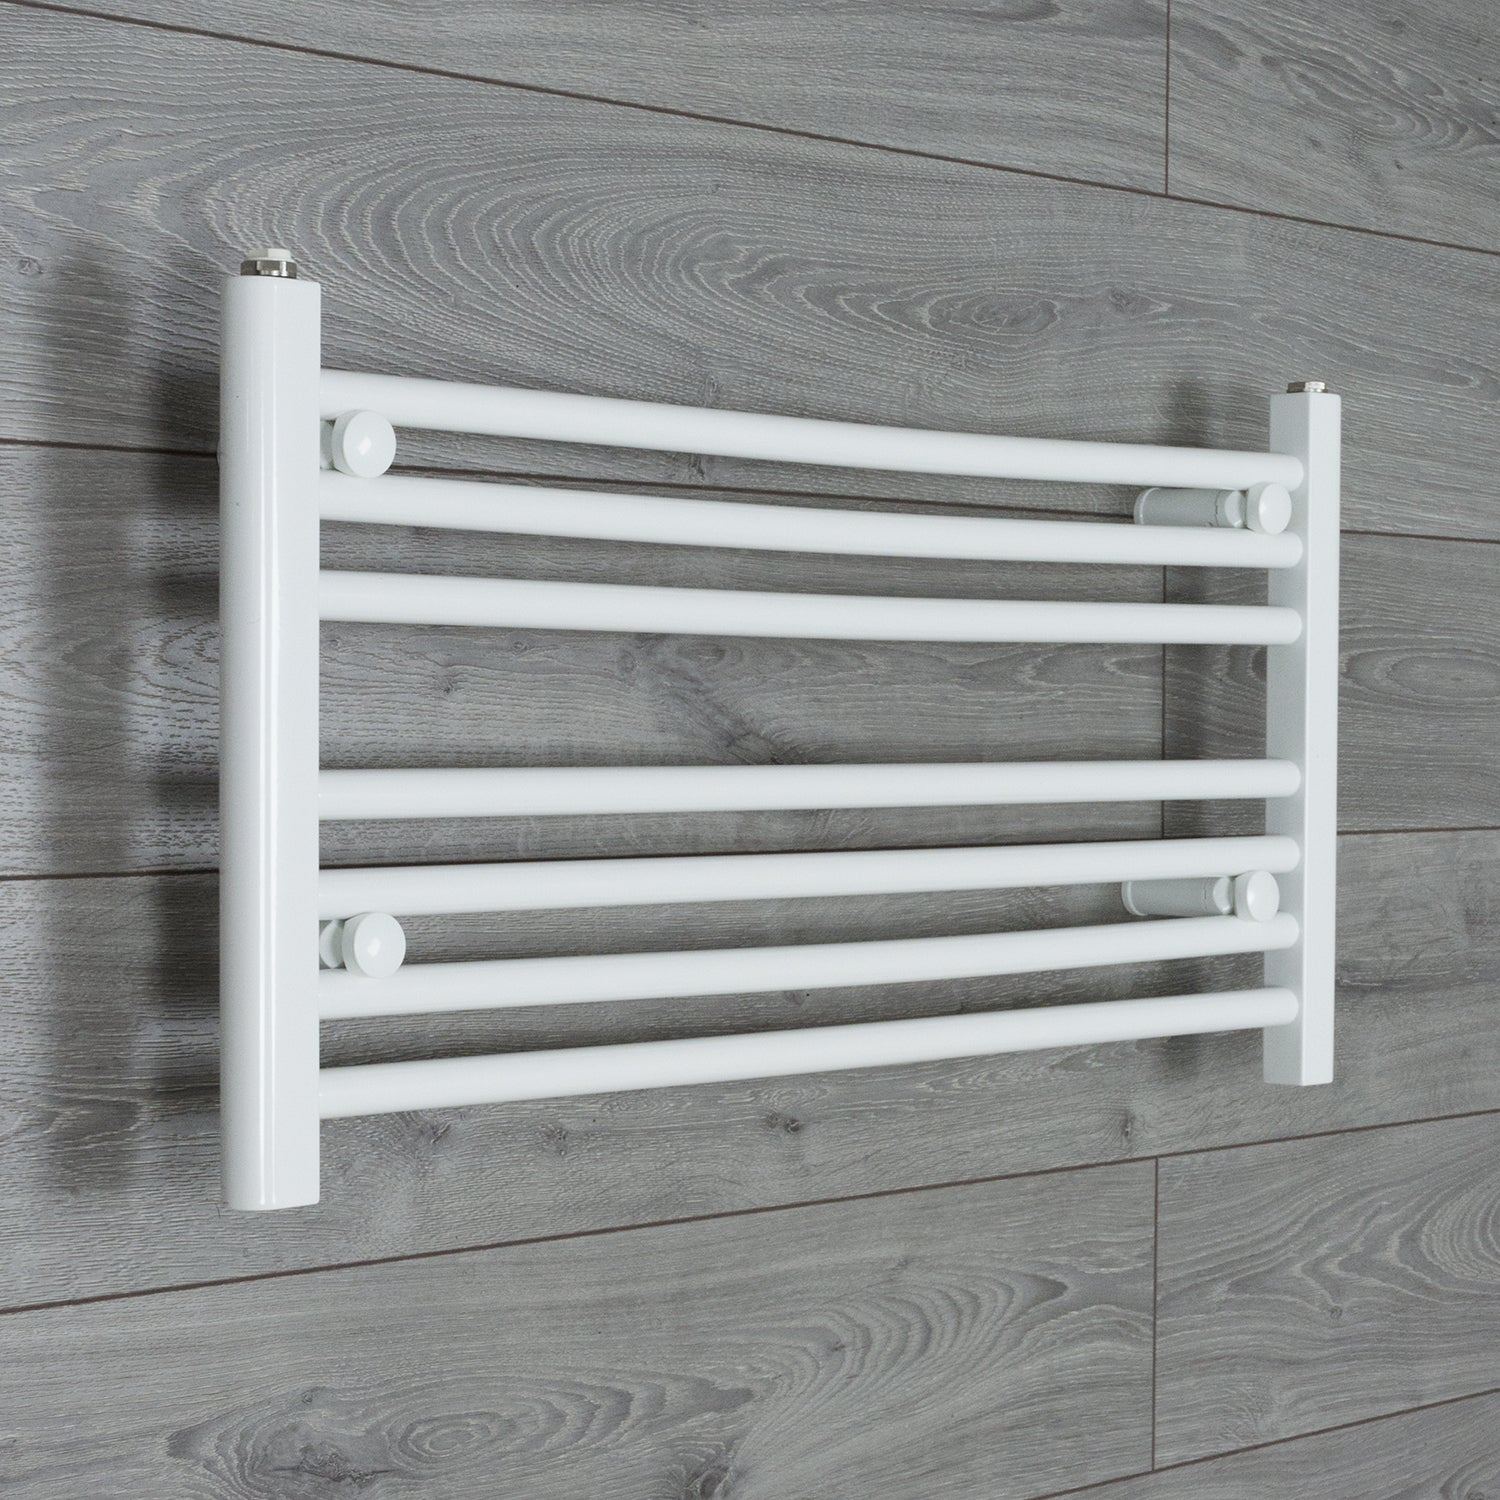 850mm Wide 400mm High White Towel Rail Radiator